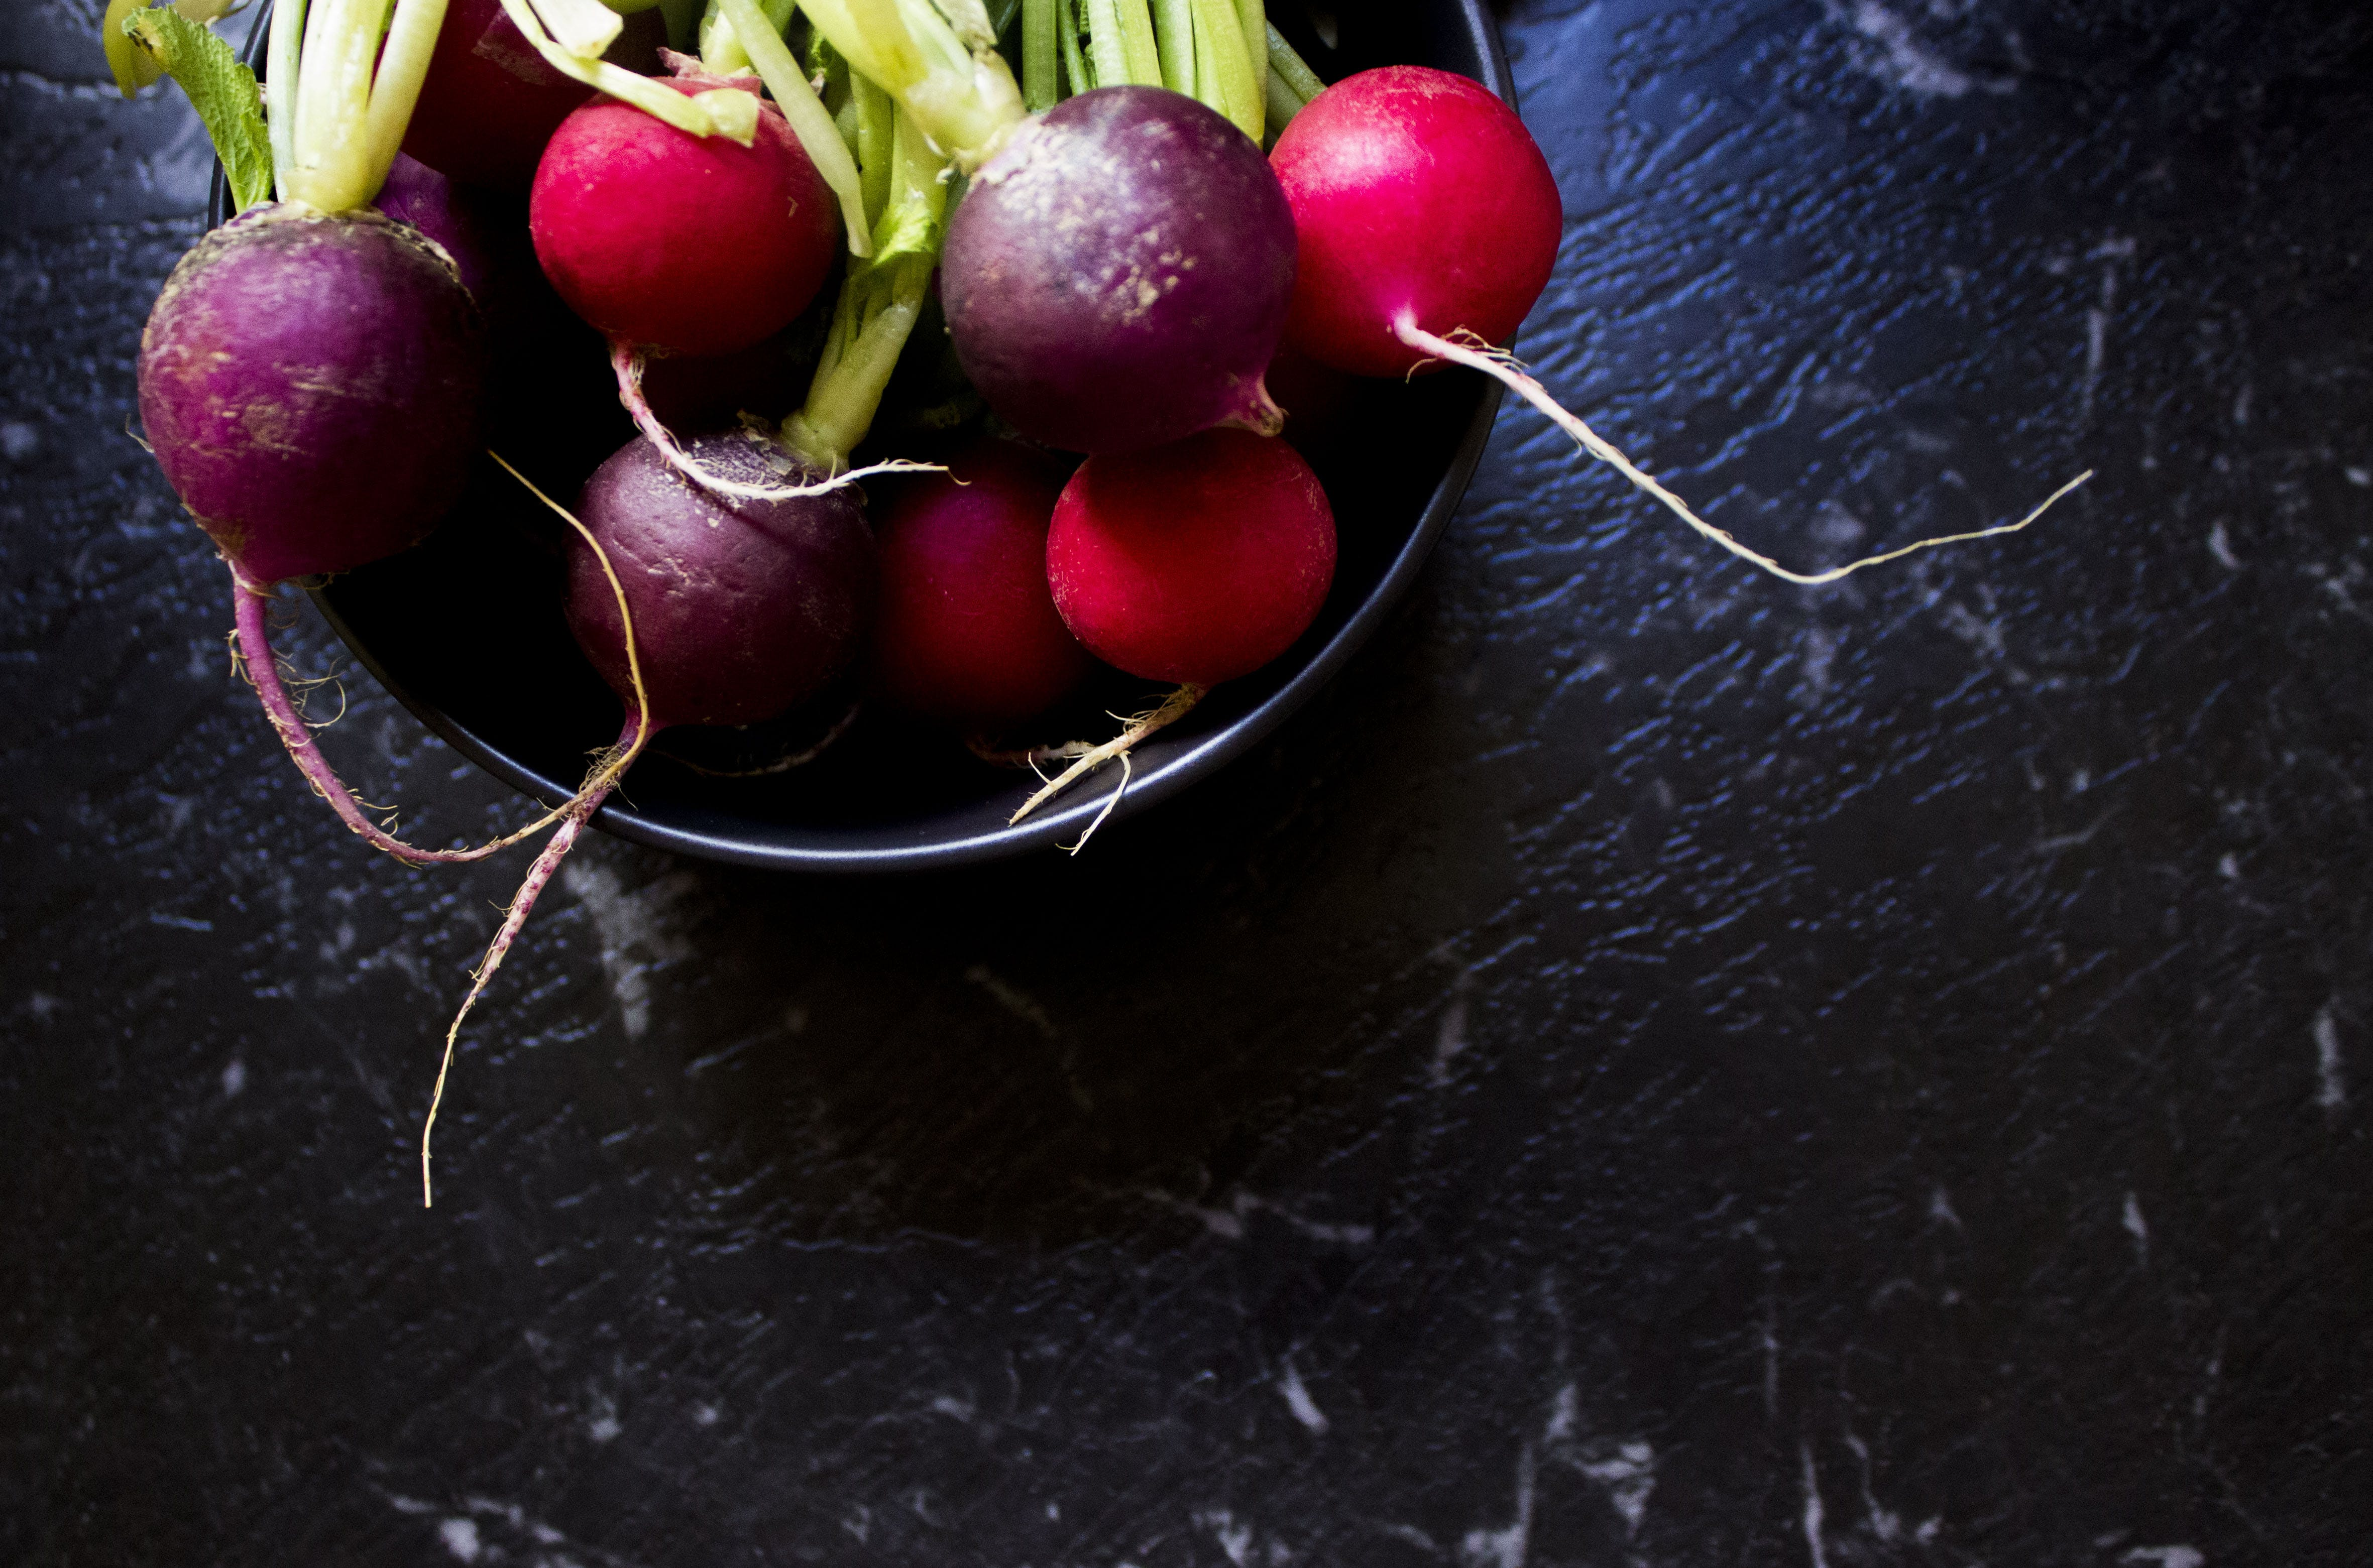 Purple And Red Radish in Bowl